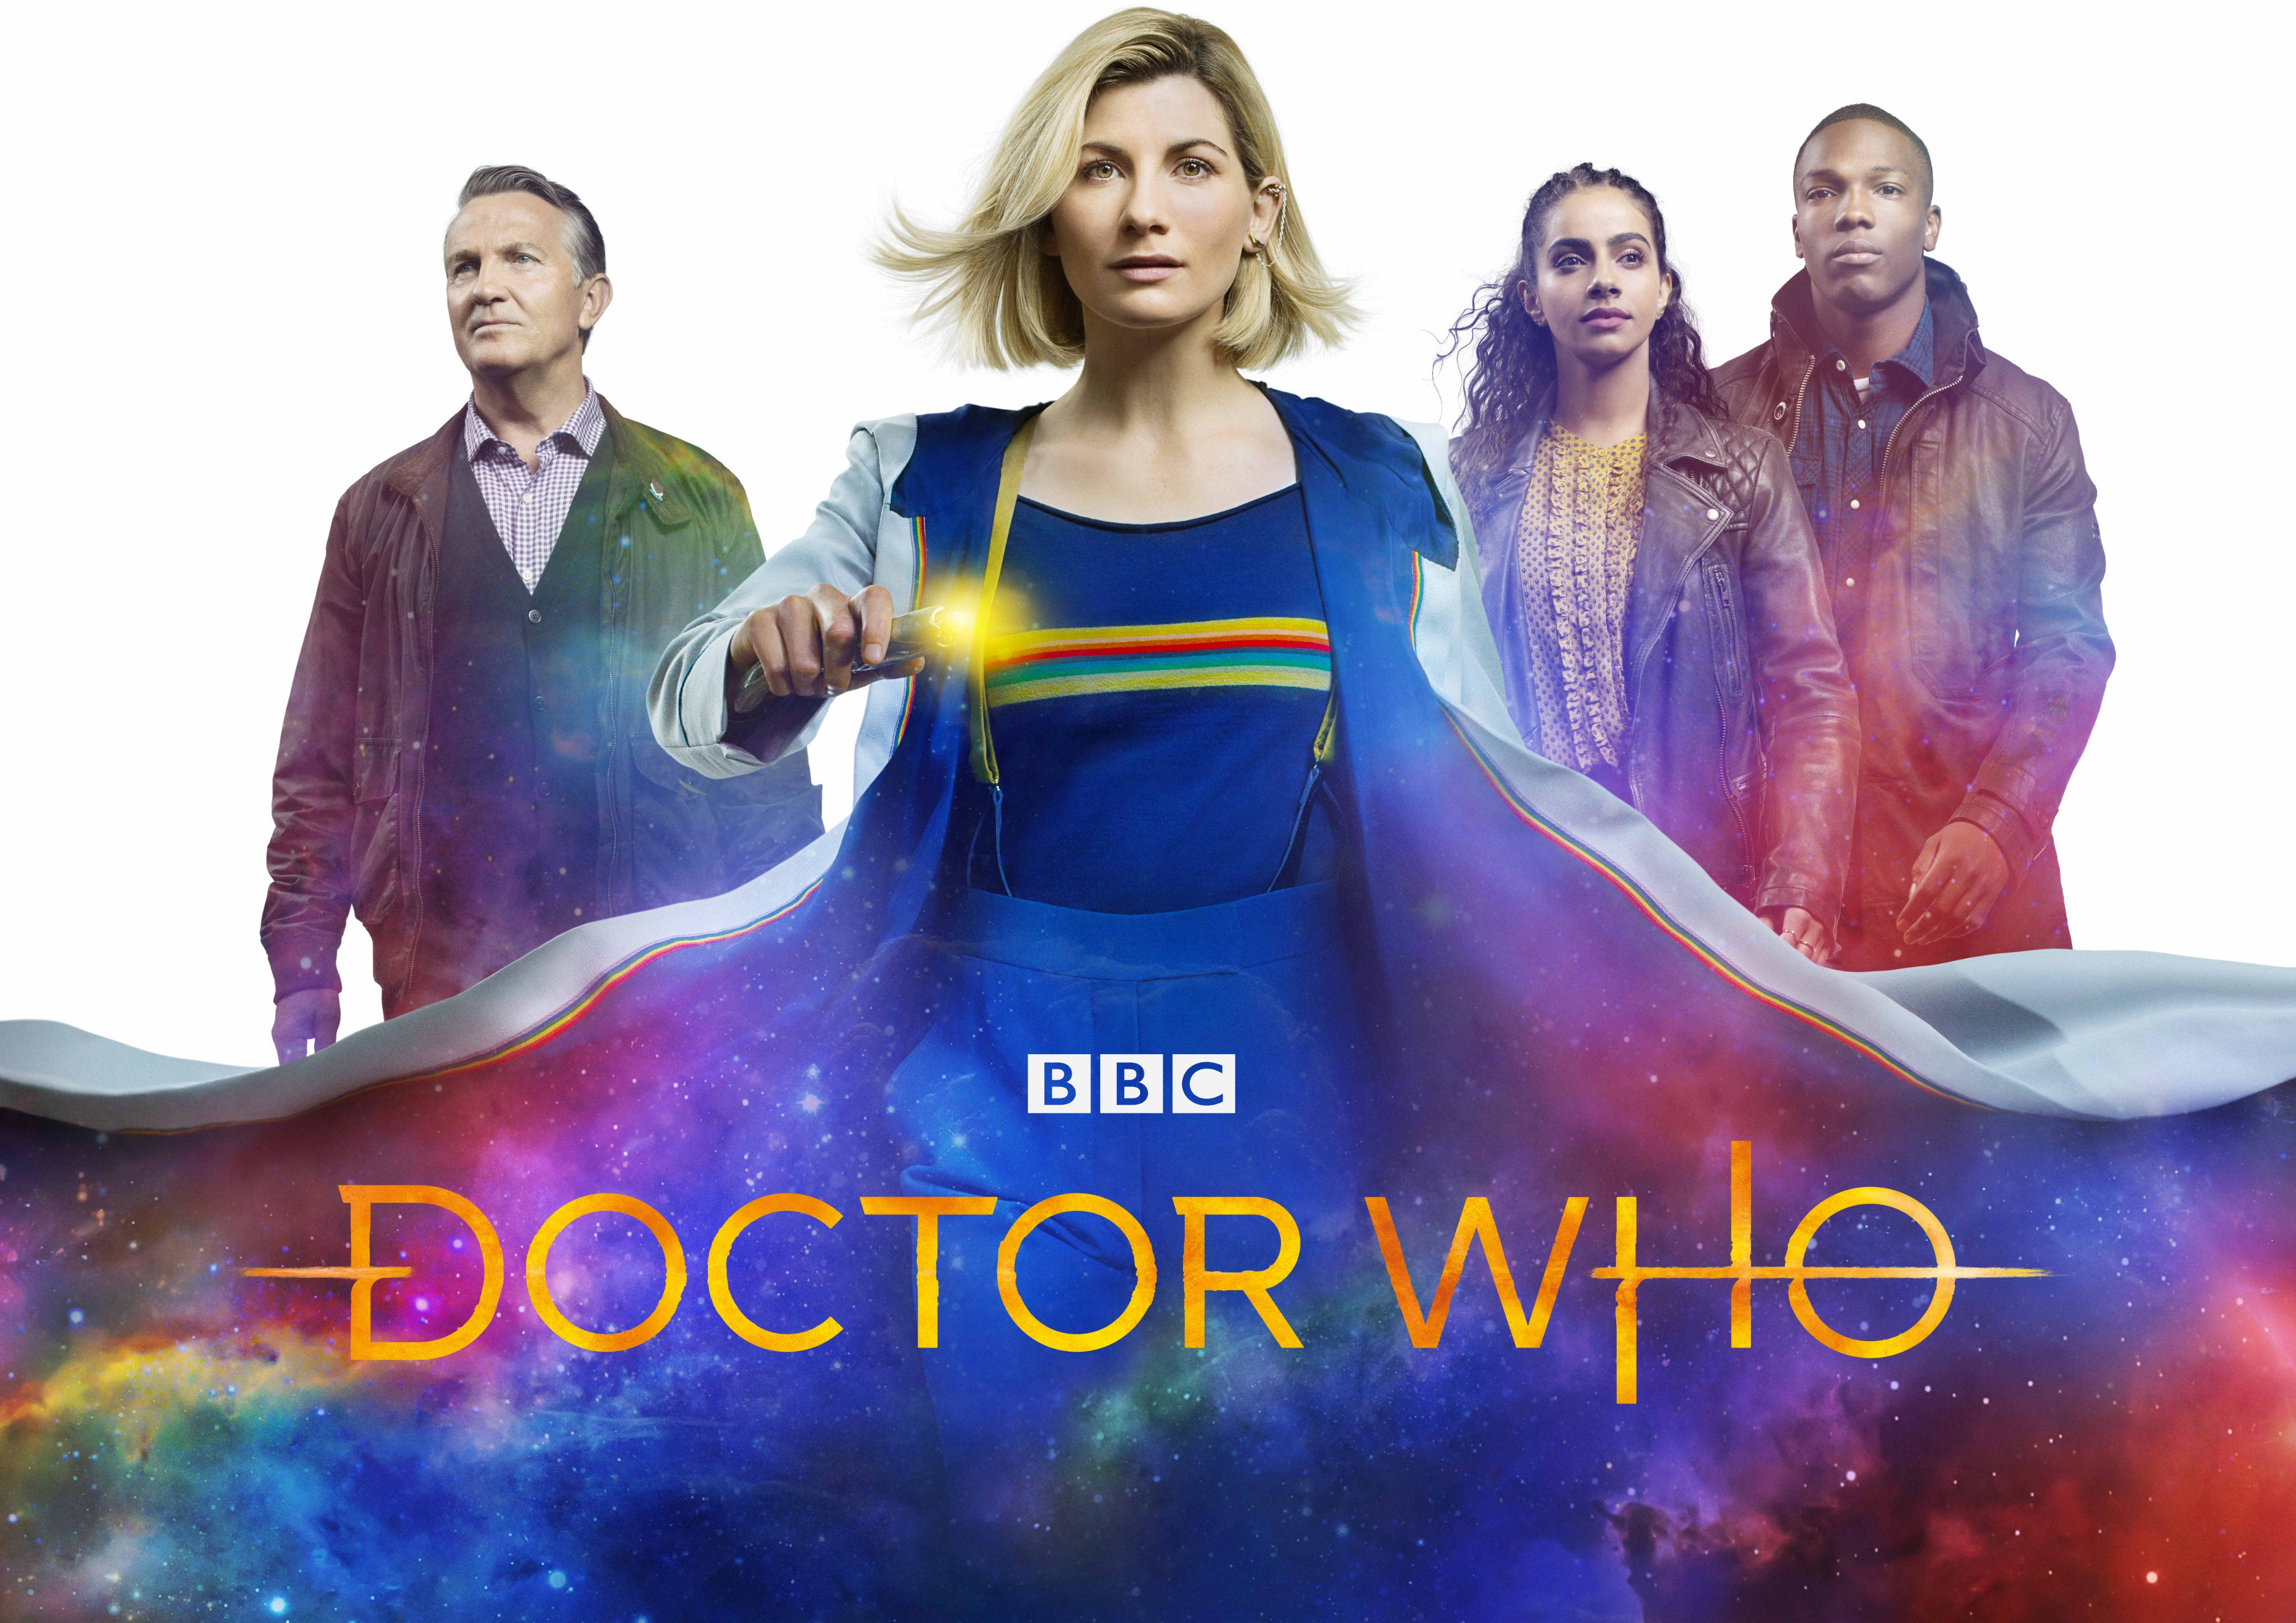 Doctor Who 4k Ultra Hd Wallpaper Background Image 4096x2896